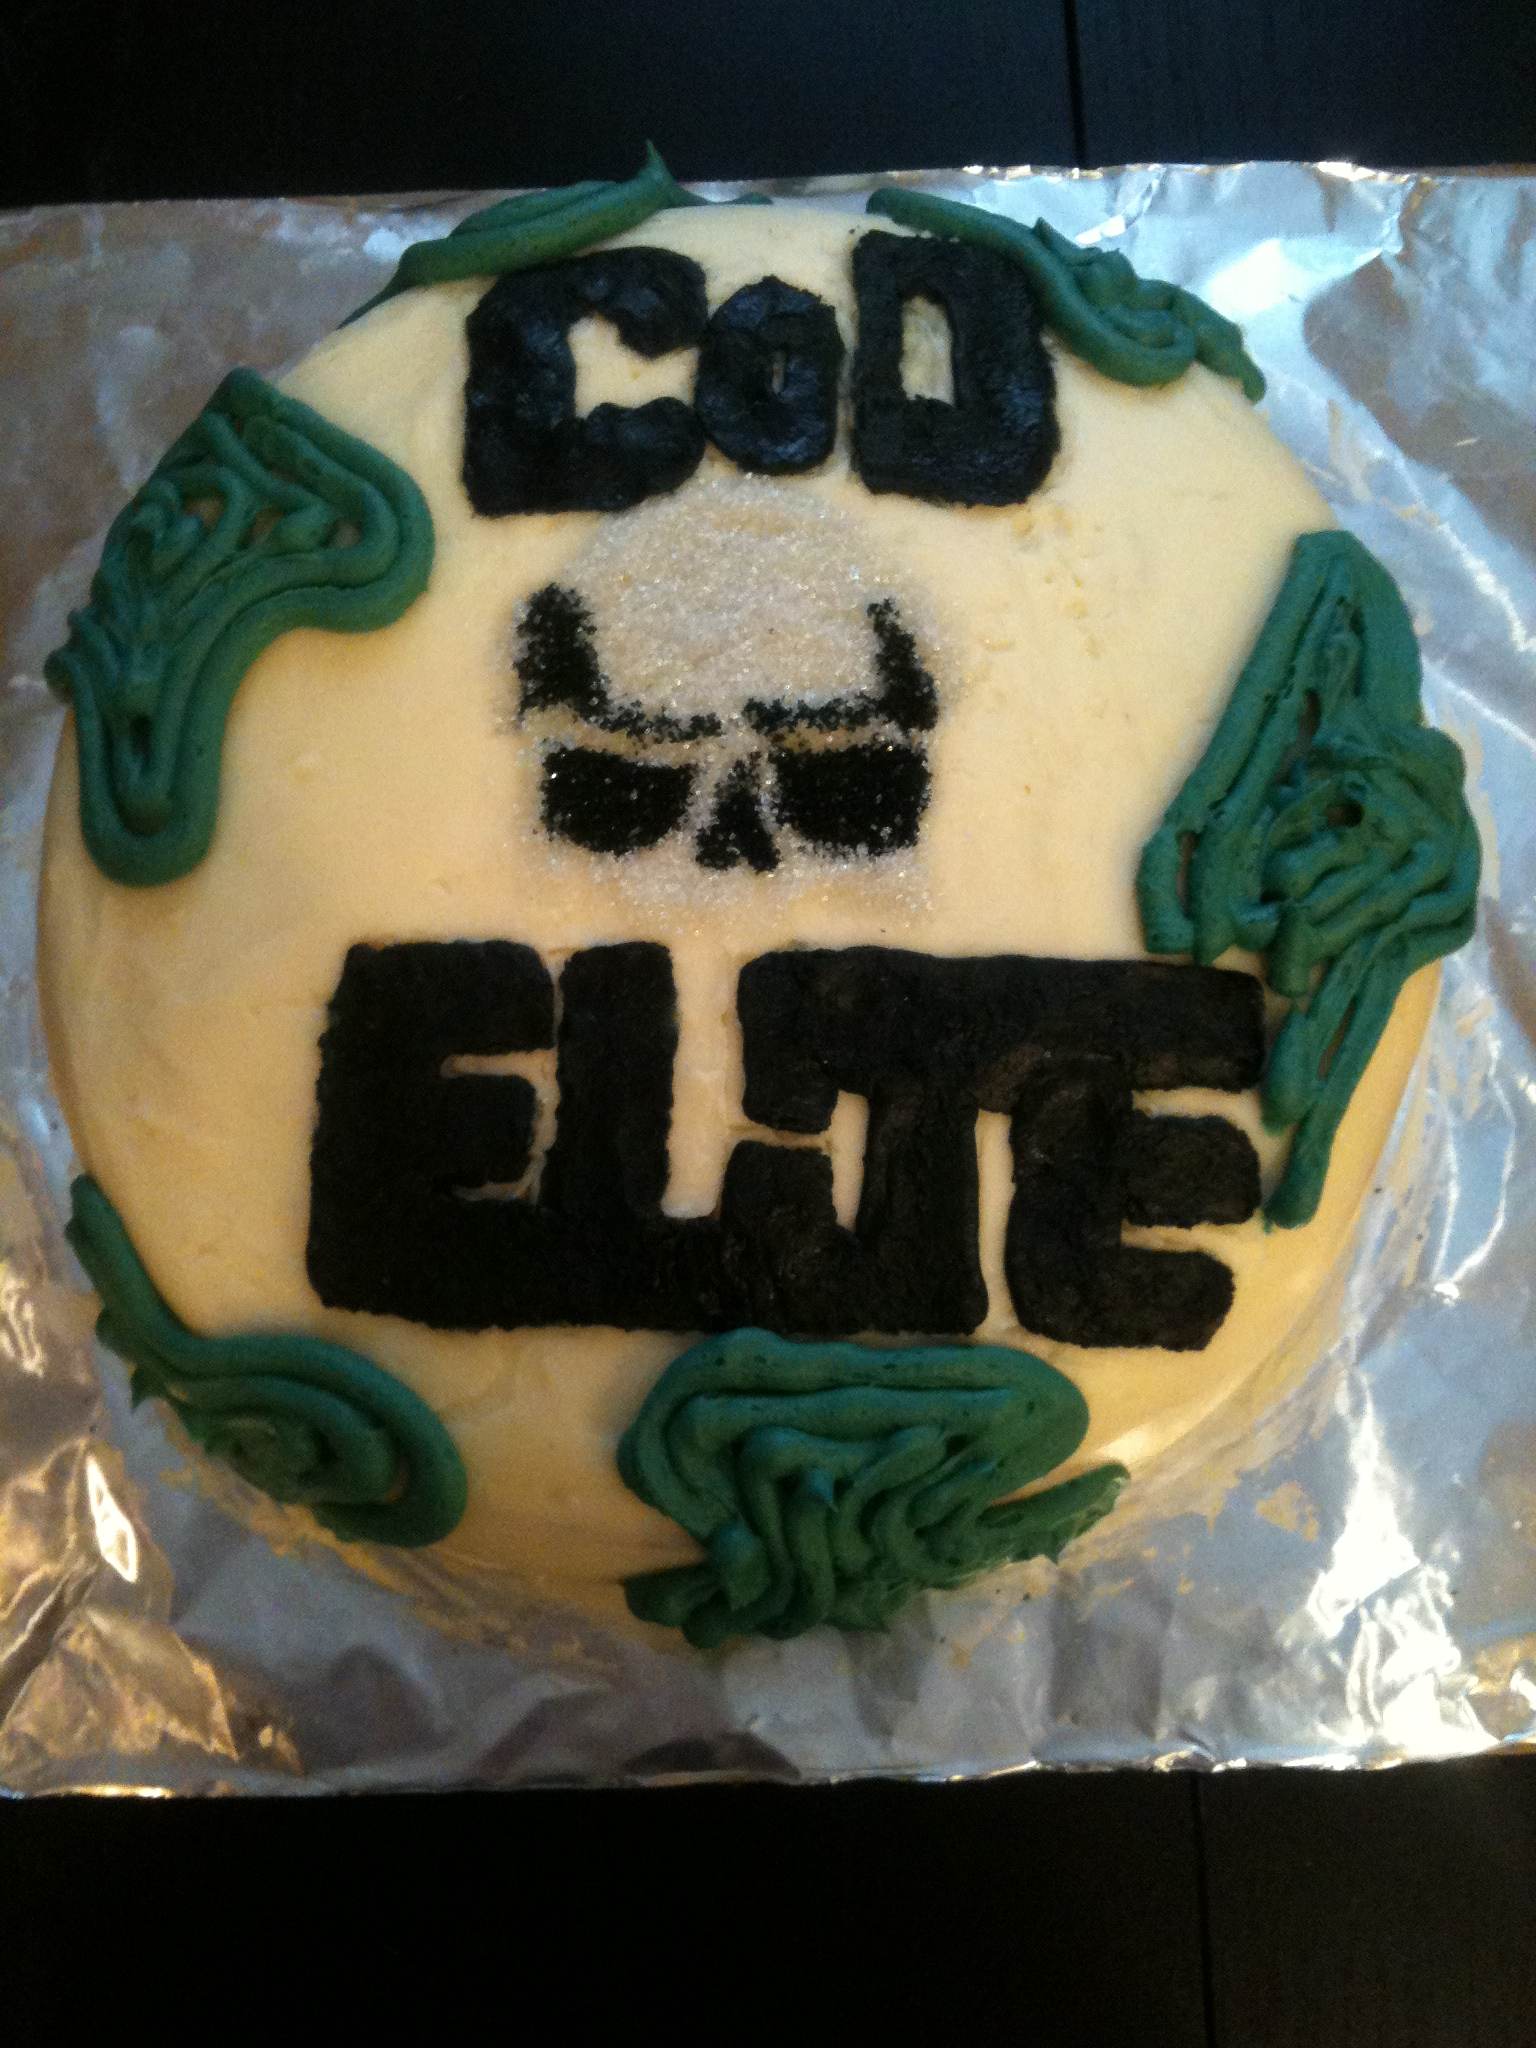 Call Of Duty Cake Recipe : recipe, Camouflage, Tutorial, Michelle's, Meals